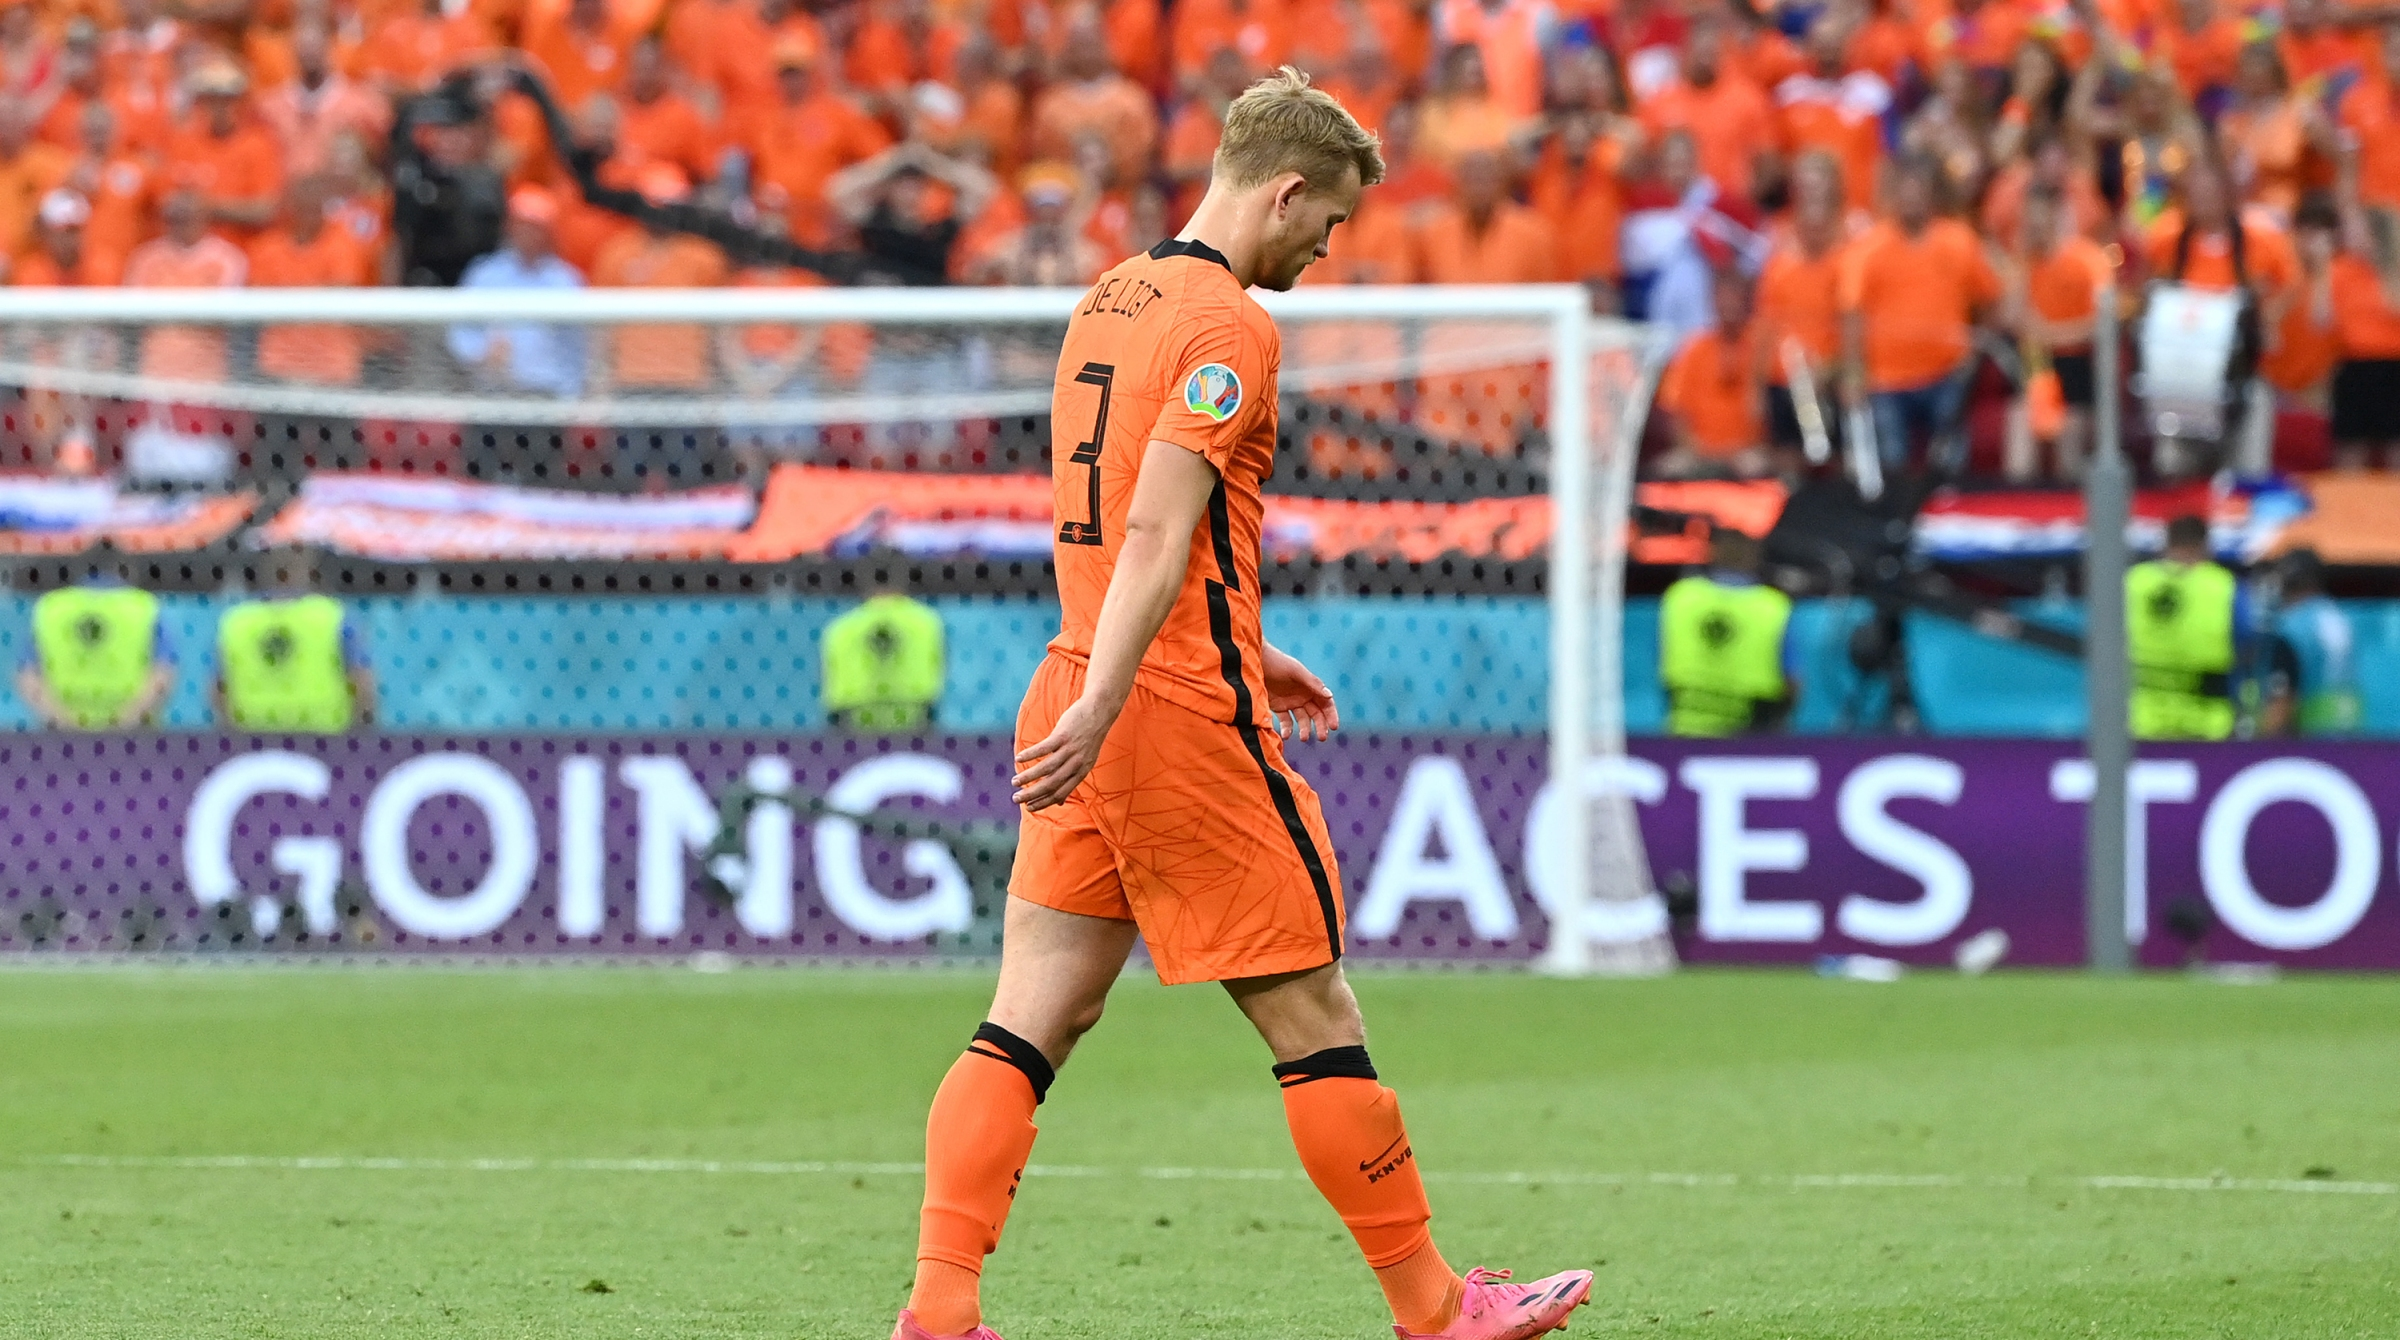 Matthijs de Ligt of Netherlands looks dejected after being shown a red card during the UEFA Euro 2020 Championship Round of 16 match between Netherlands and Czech Republic at Puskas Arena on June 27, 2021 in Budapest, Hungary.